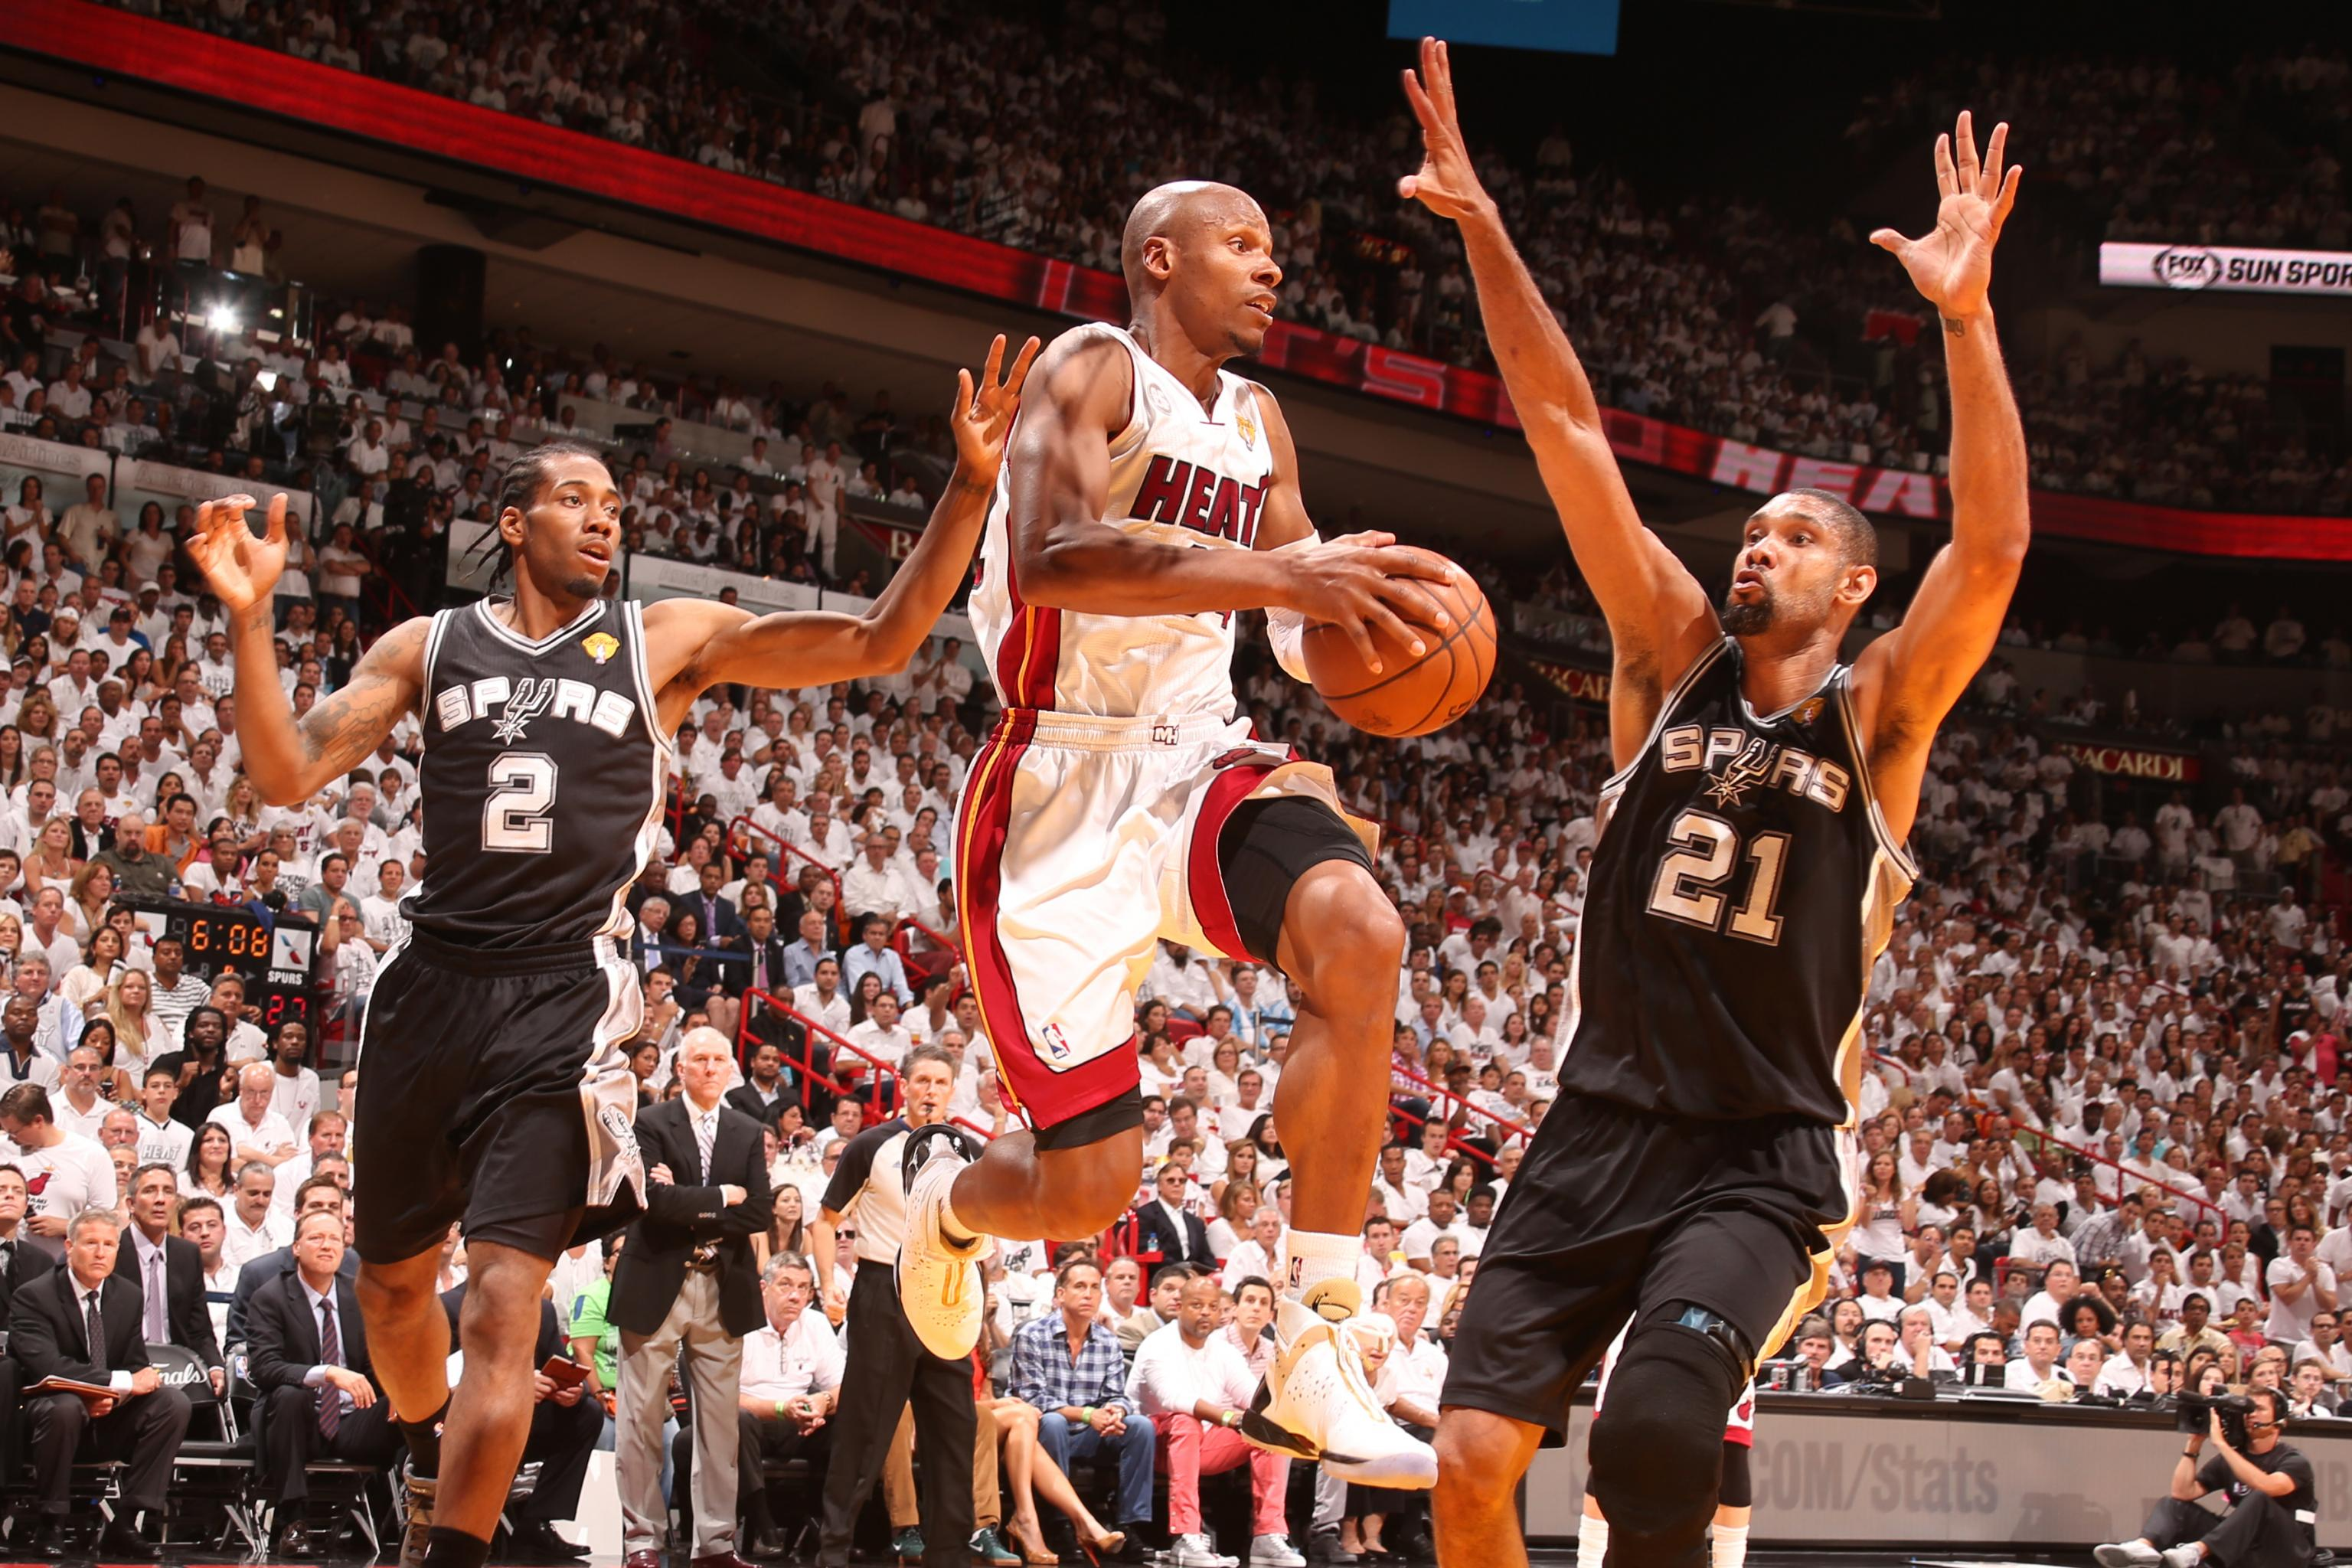 Heat's Udonis Haslem: Ray Allen's 3 in 2013 NBA Finals Game 7 ...